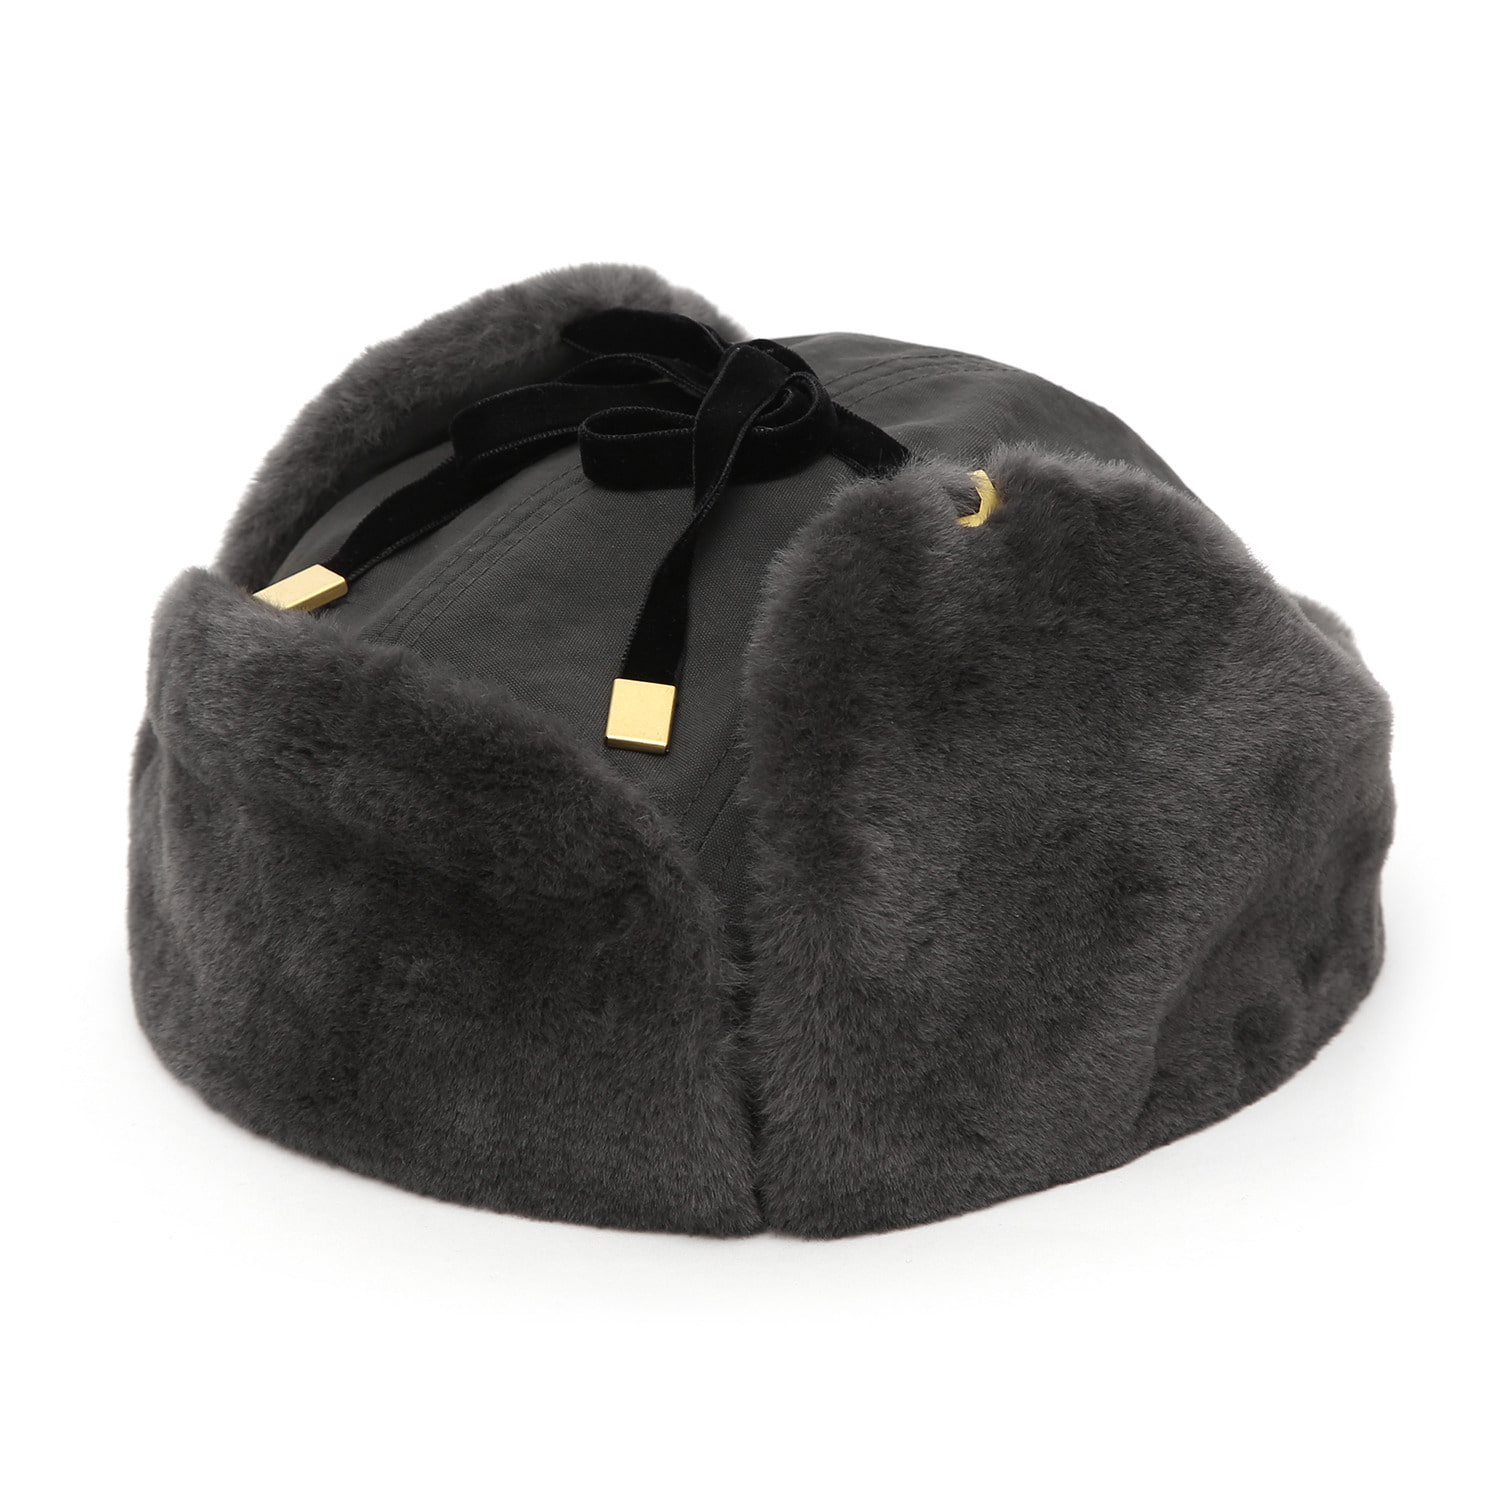 FLIGHT RABBIT HAT / FUR / CHARCOAL